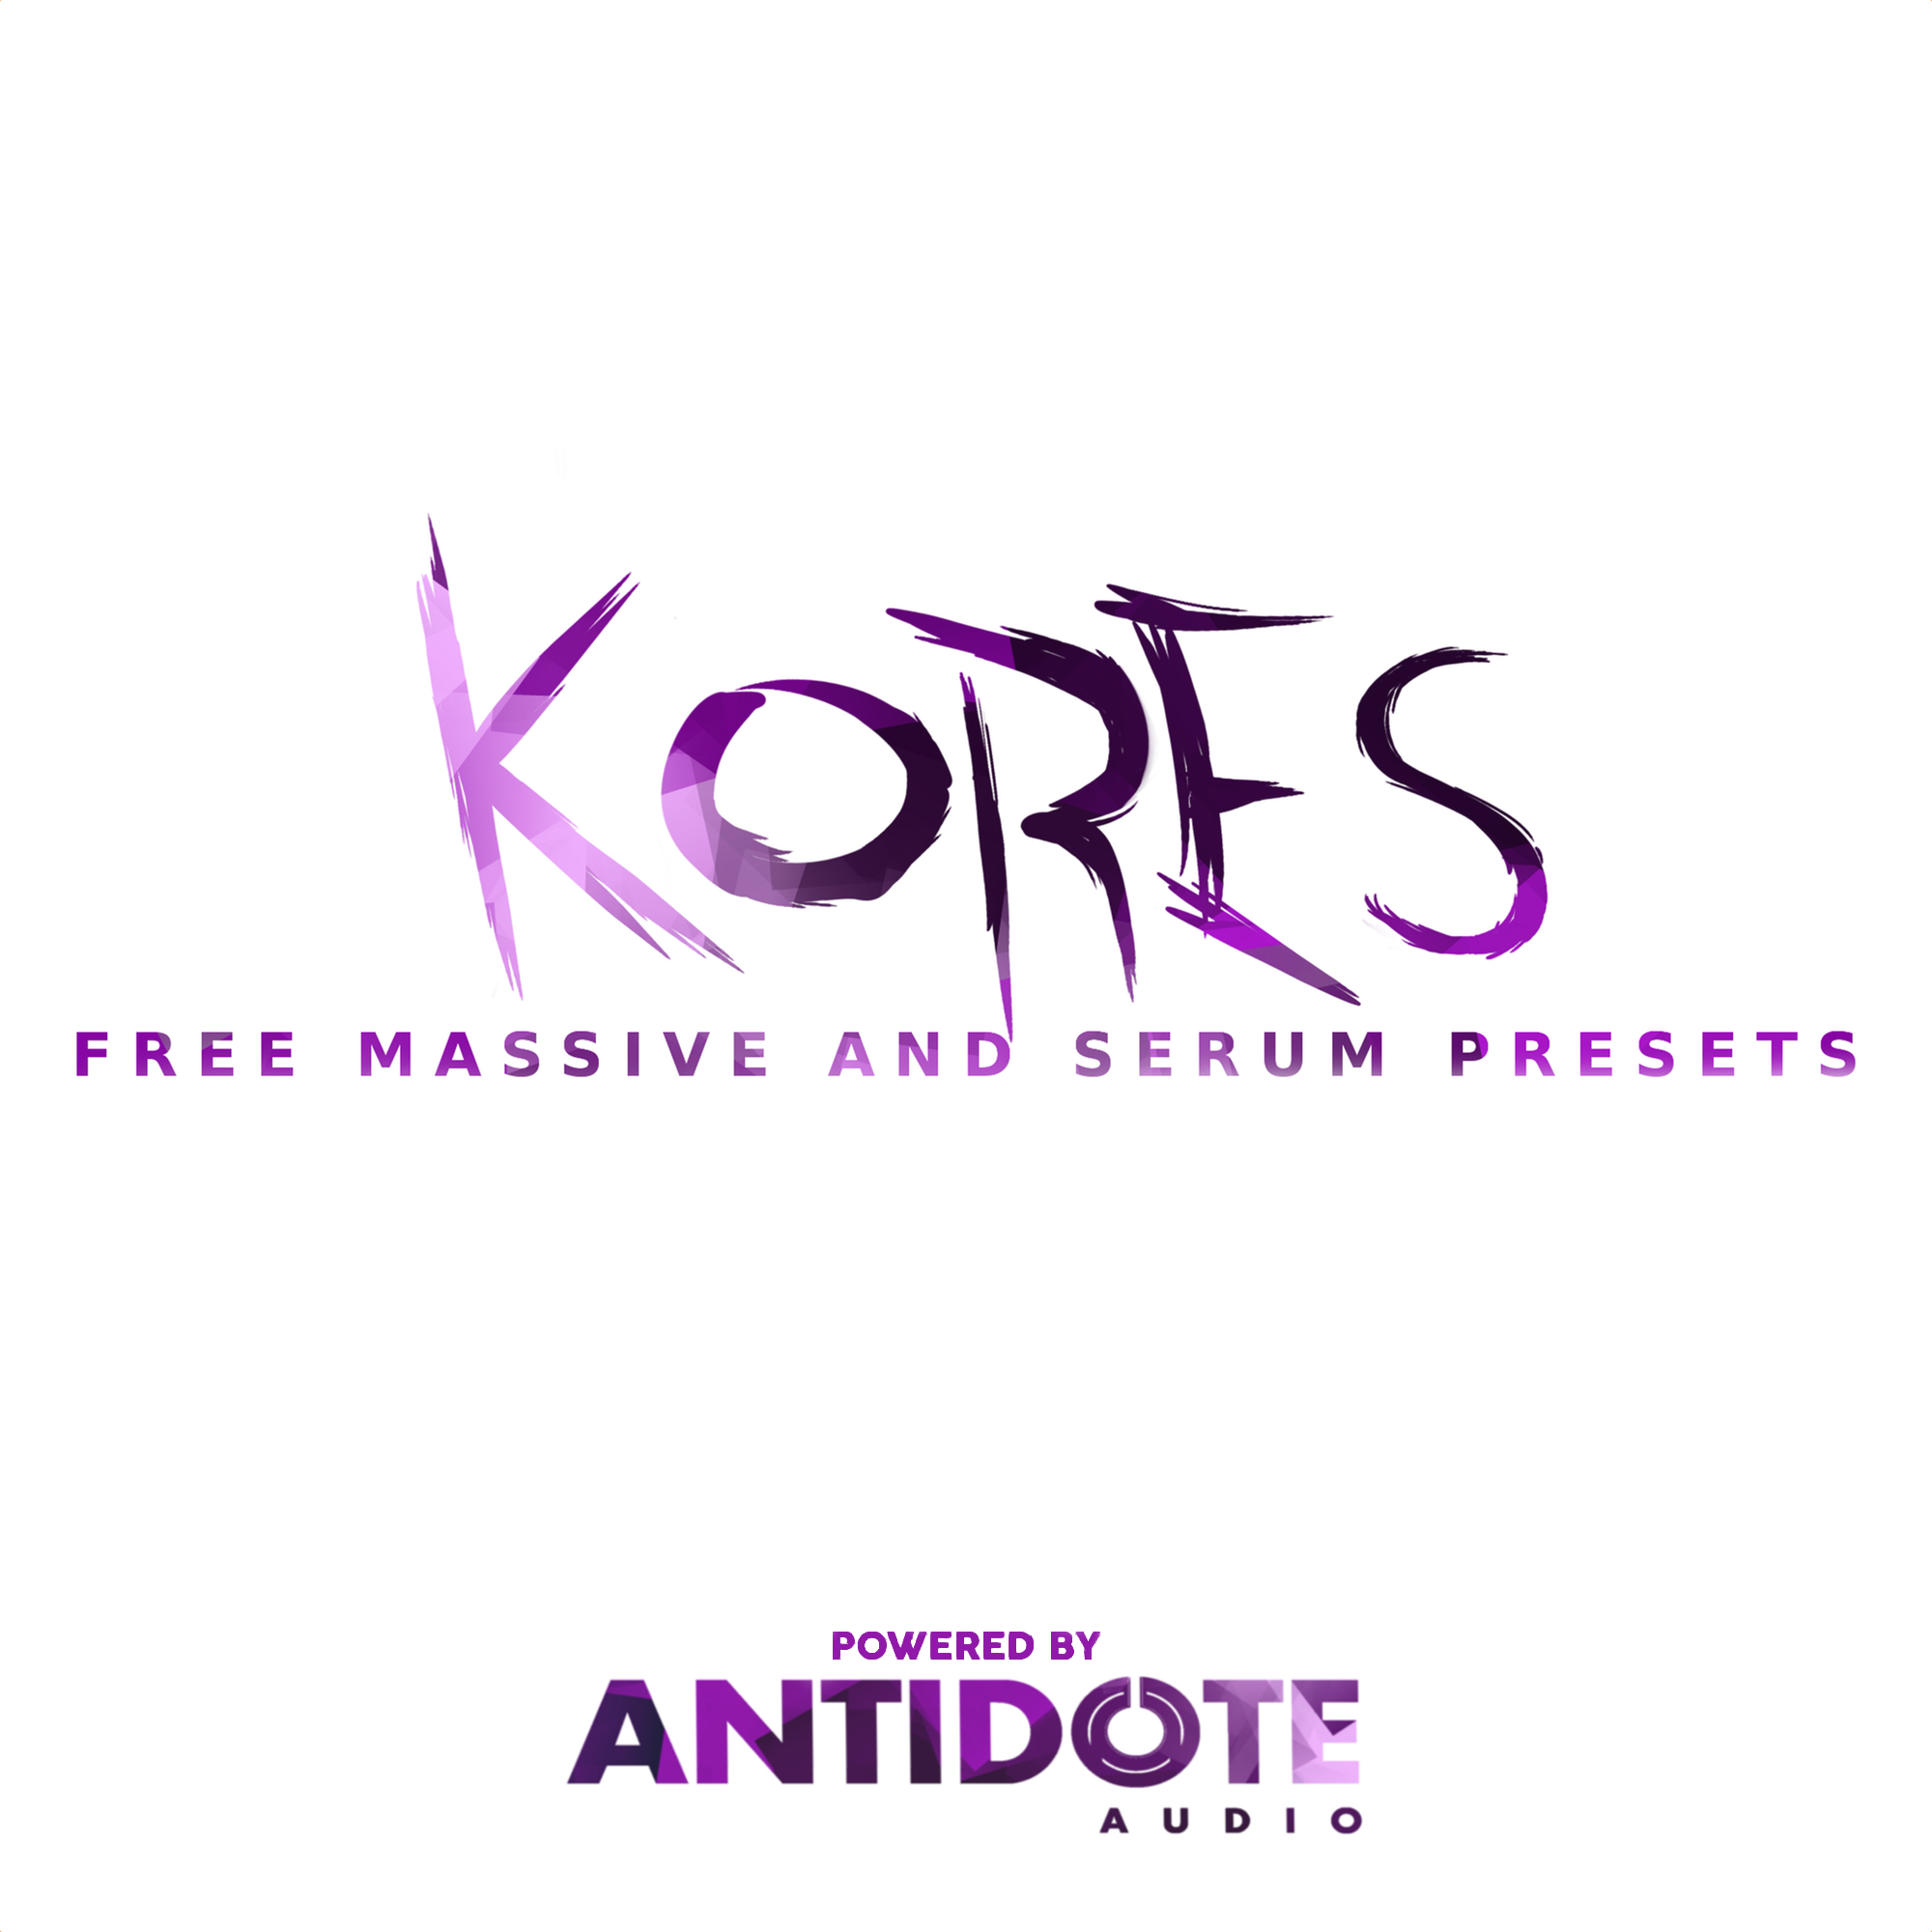 FREE Serum Massive Presets by KORES by Antidote Audio | Free